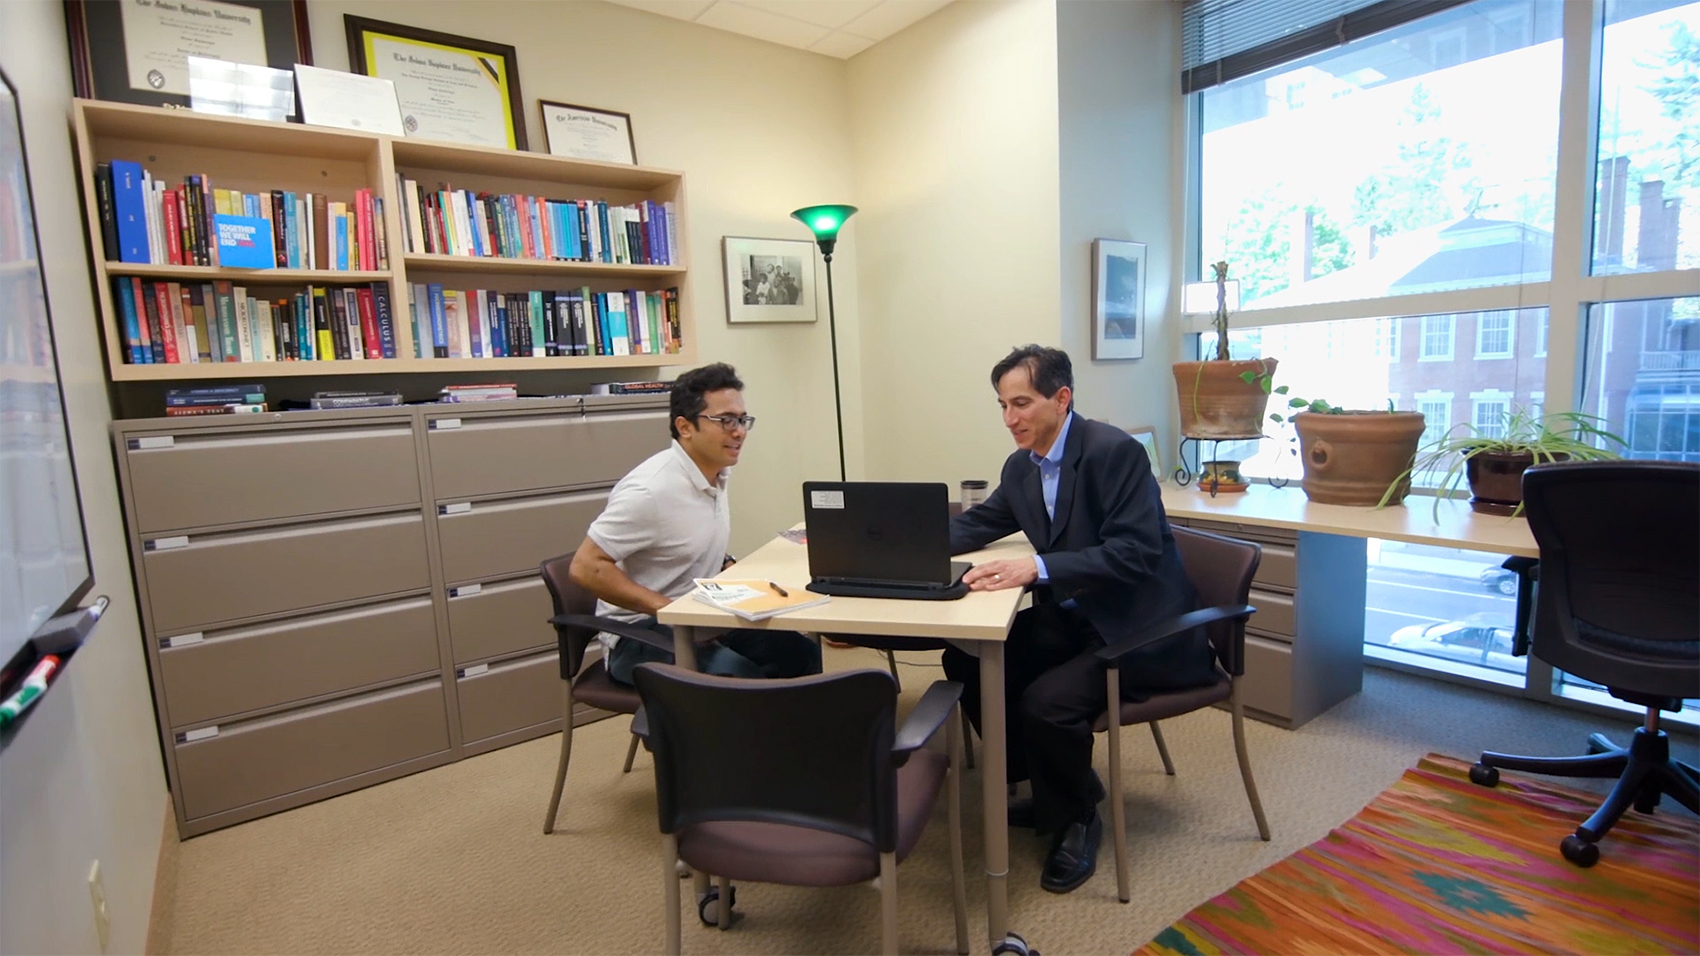 Student and Professor Collaborating